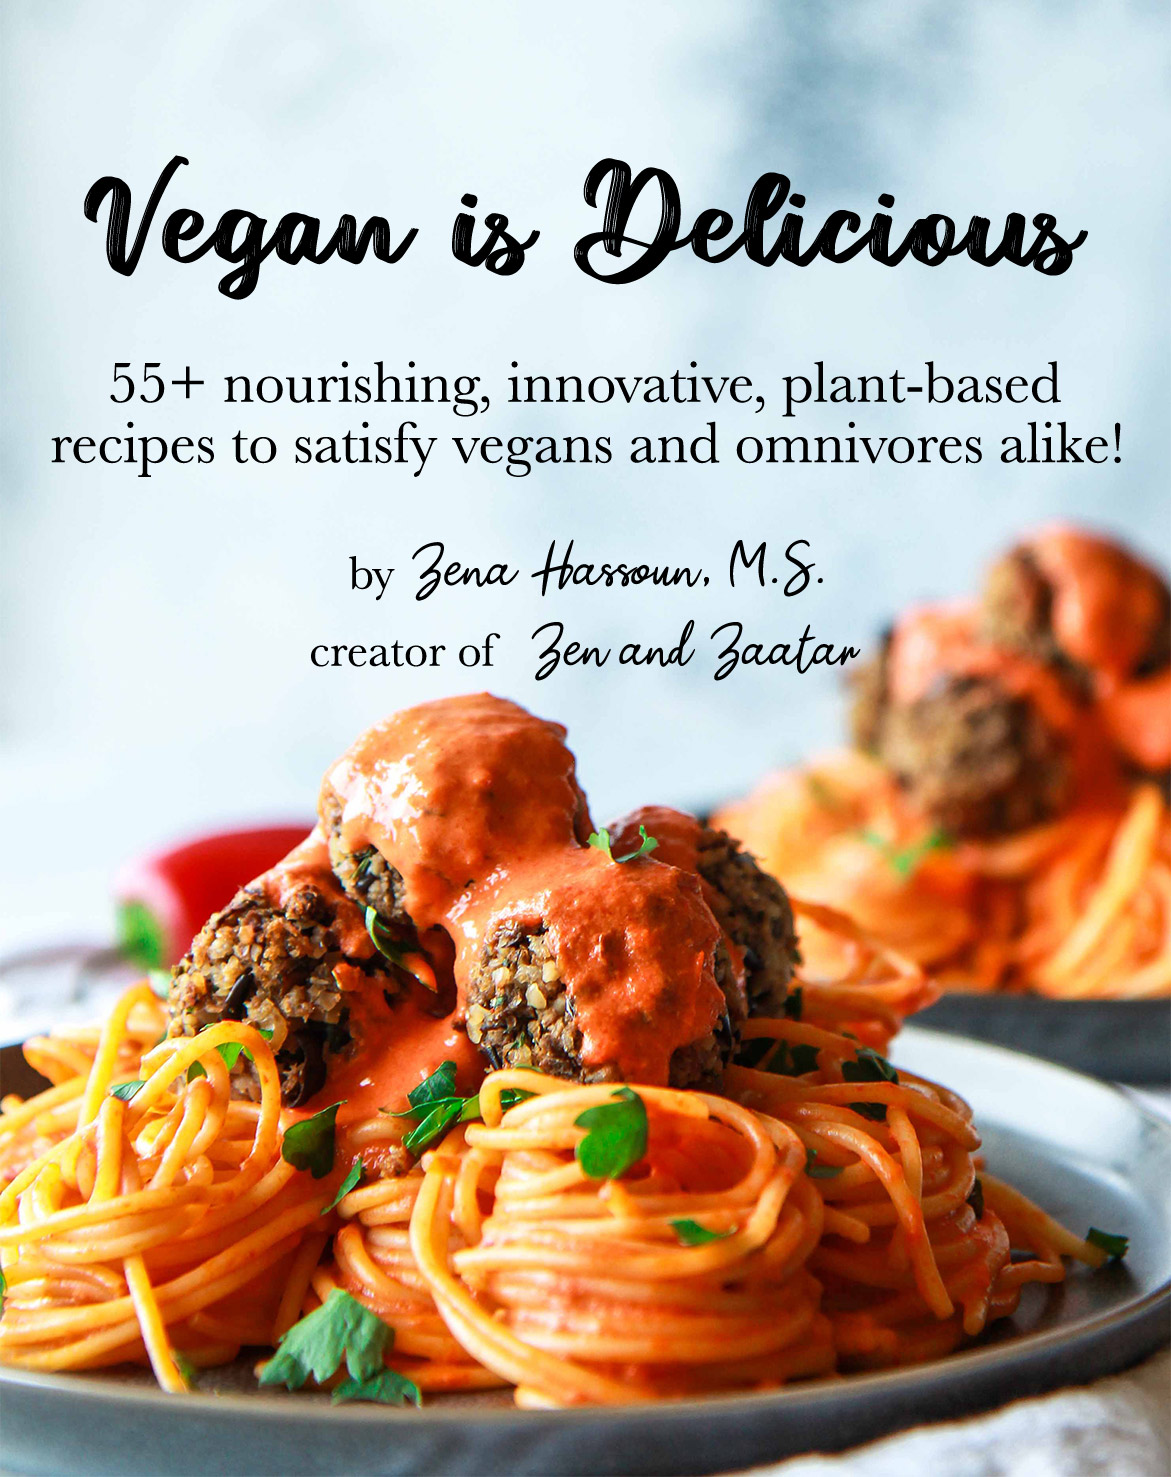 Vegan is Delicious: 55+ nourishing, innovative, plant-based recipes to satisfy vegans and omnivores alike!